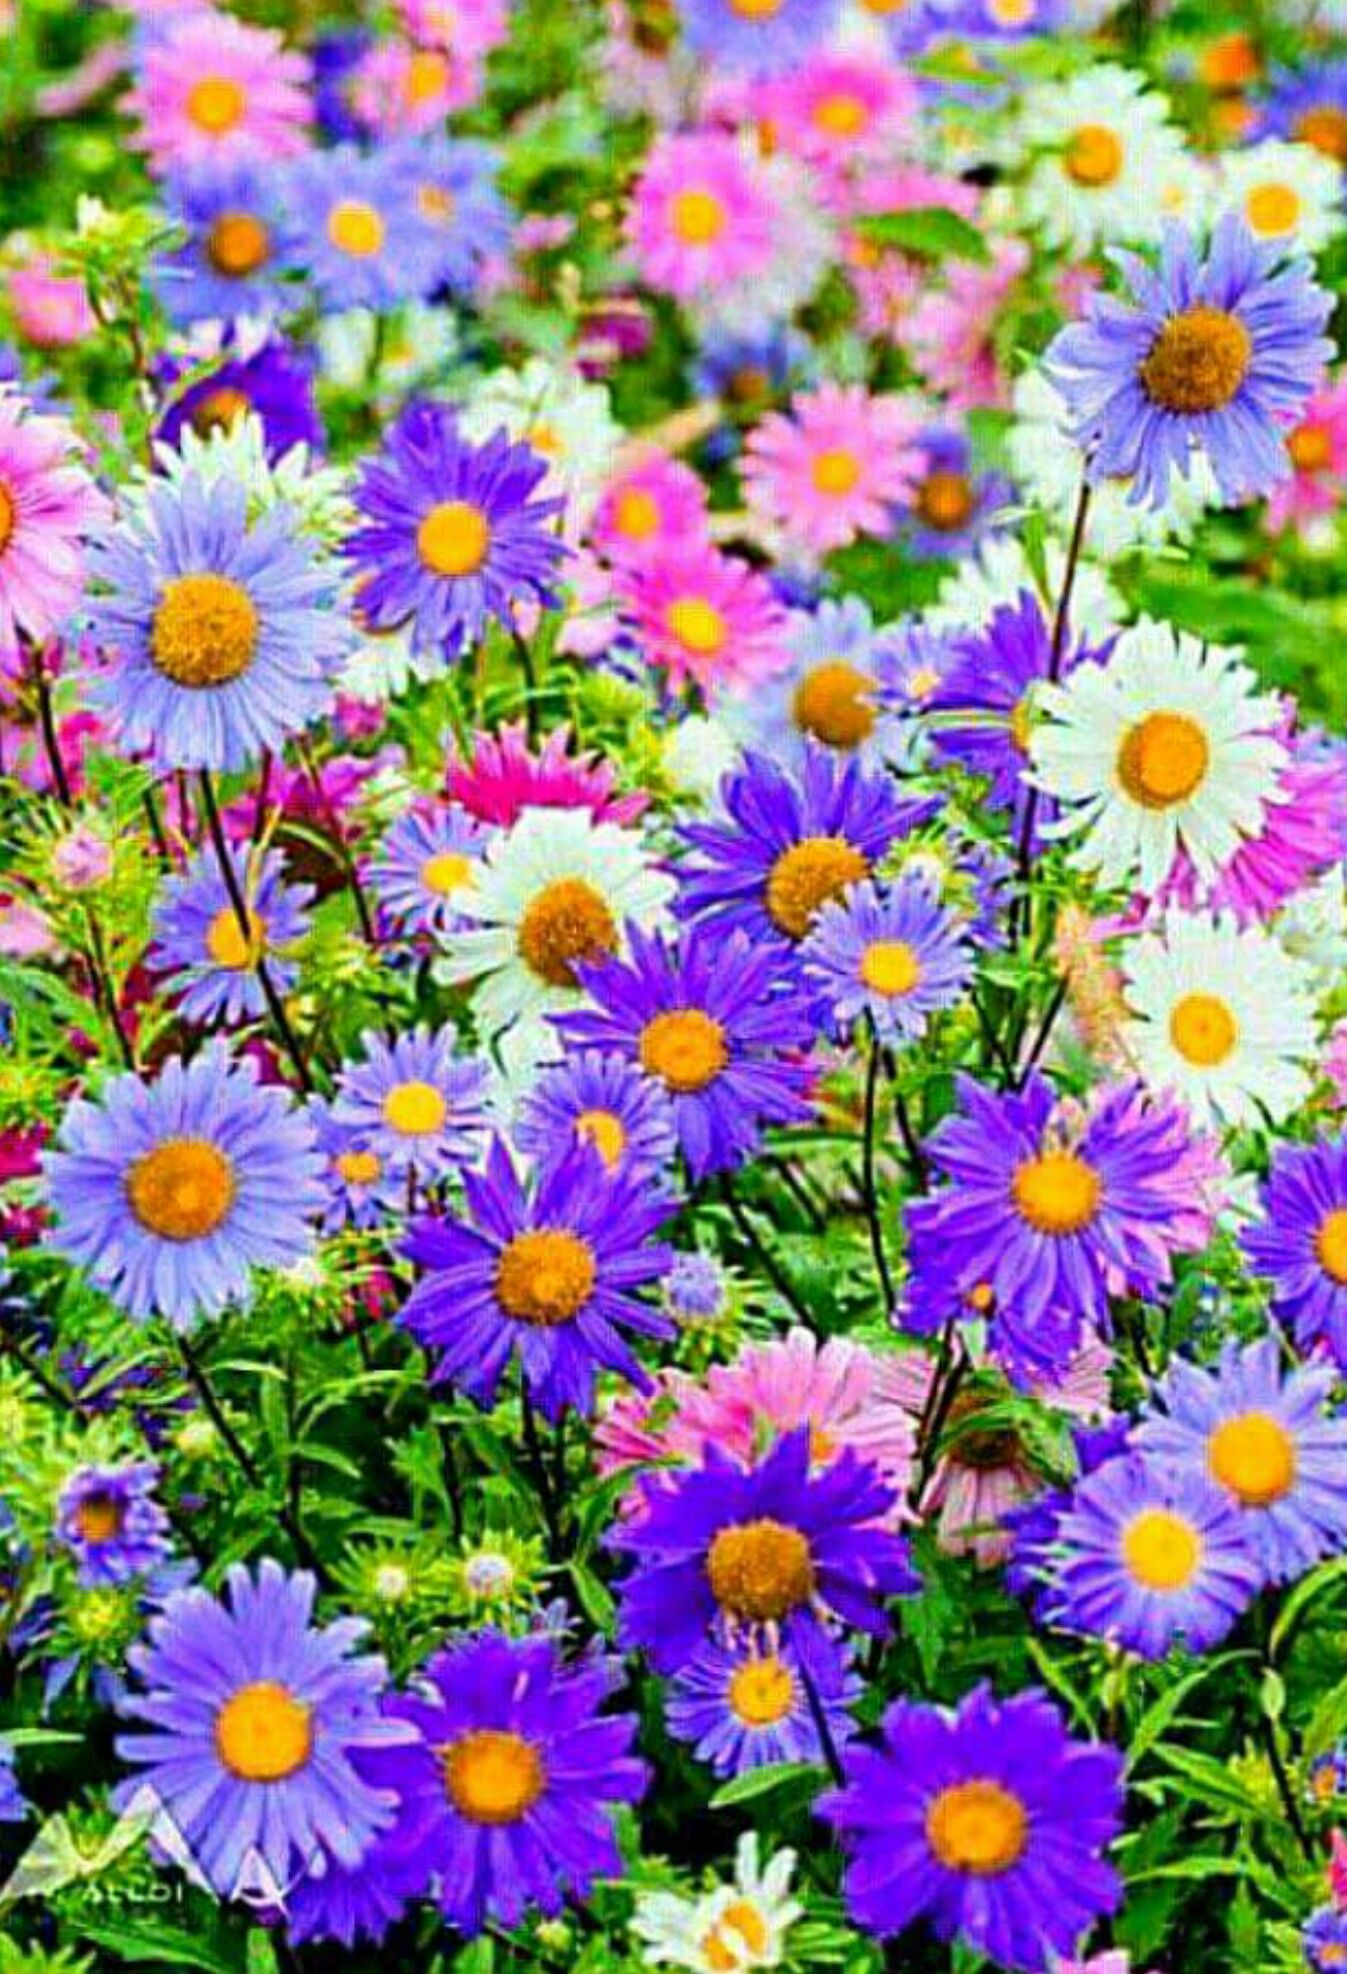 Aline Flowers With Images Beautiful Flowers Amazing Flowers Plants